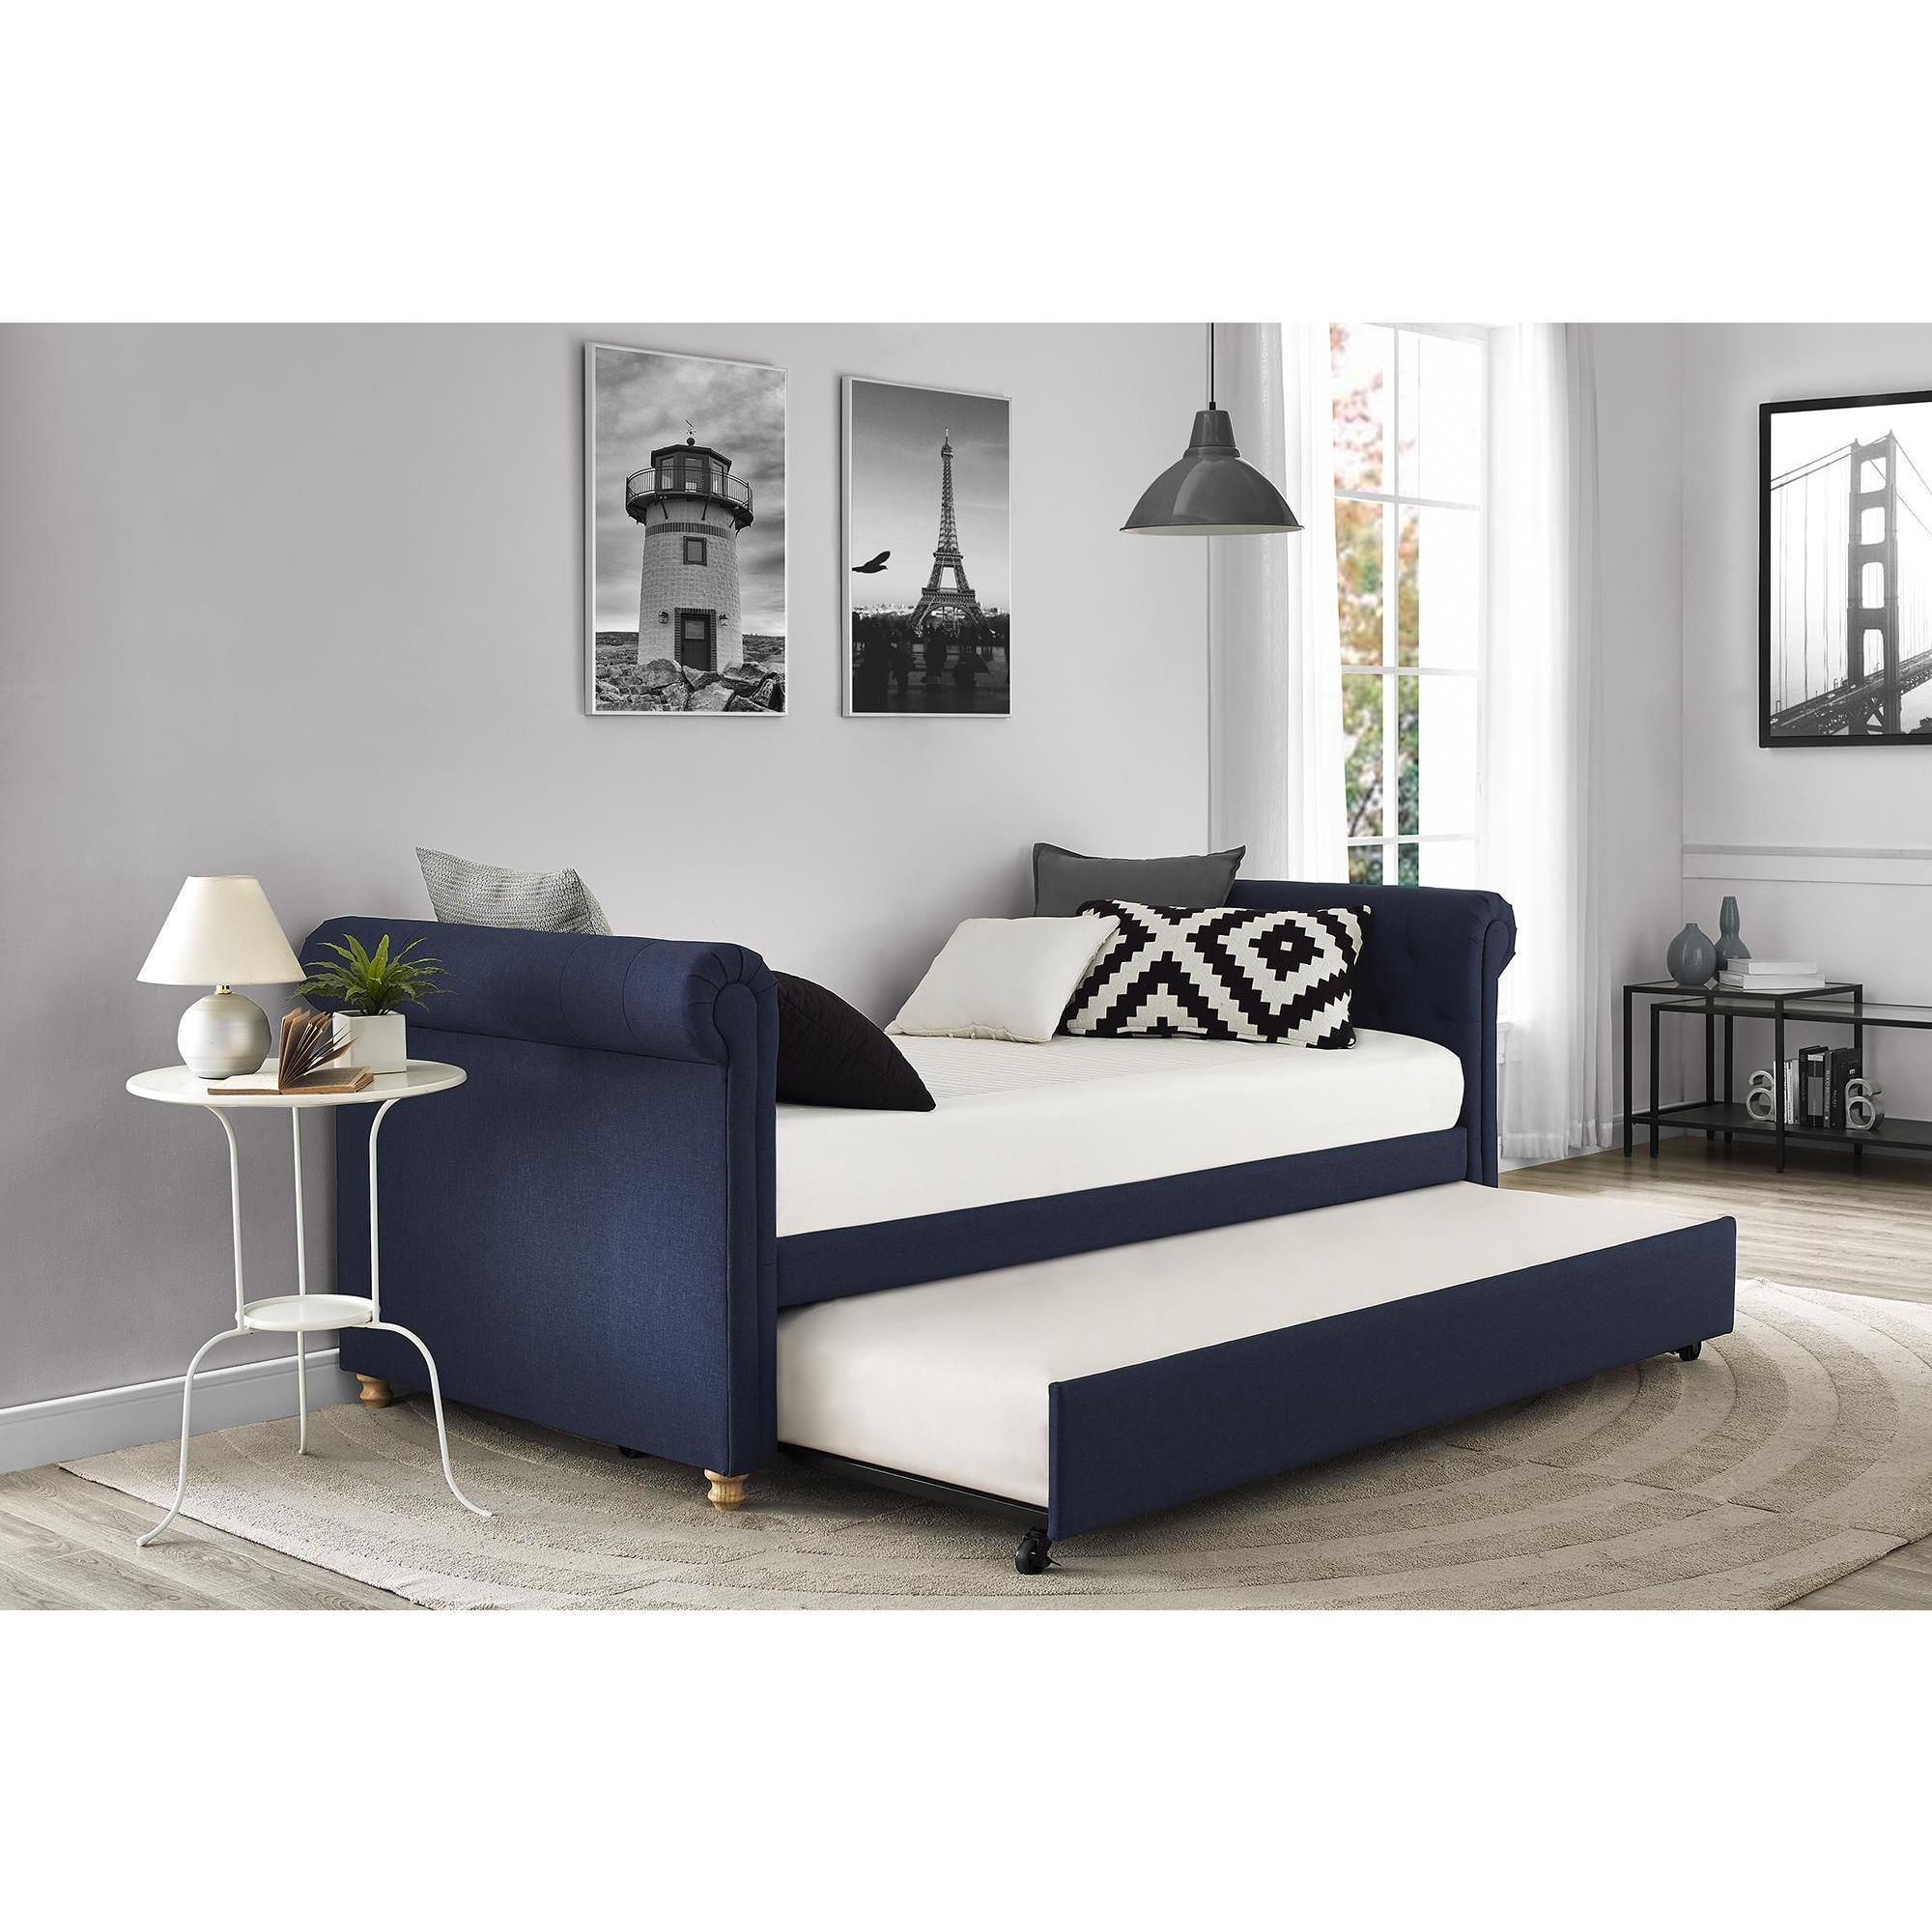 Overstock Com Online Shopping Bedding Furniture Electronics Jewelry Clothing More Upholstered Daybed Daybed With Trundle Daybed